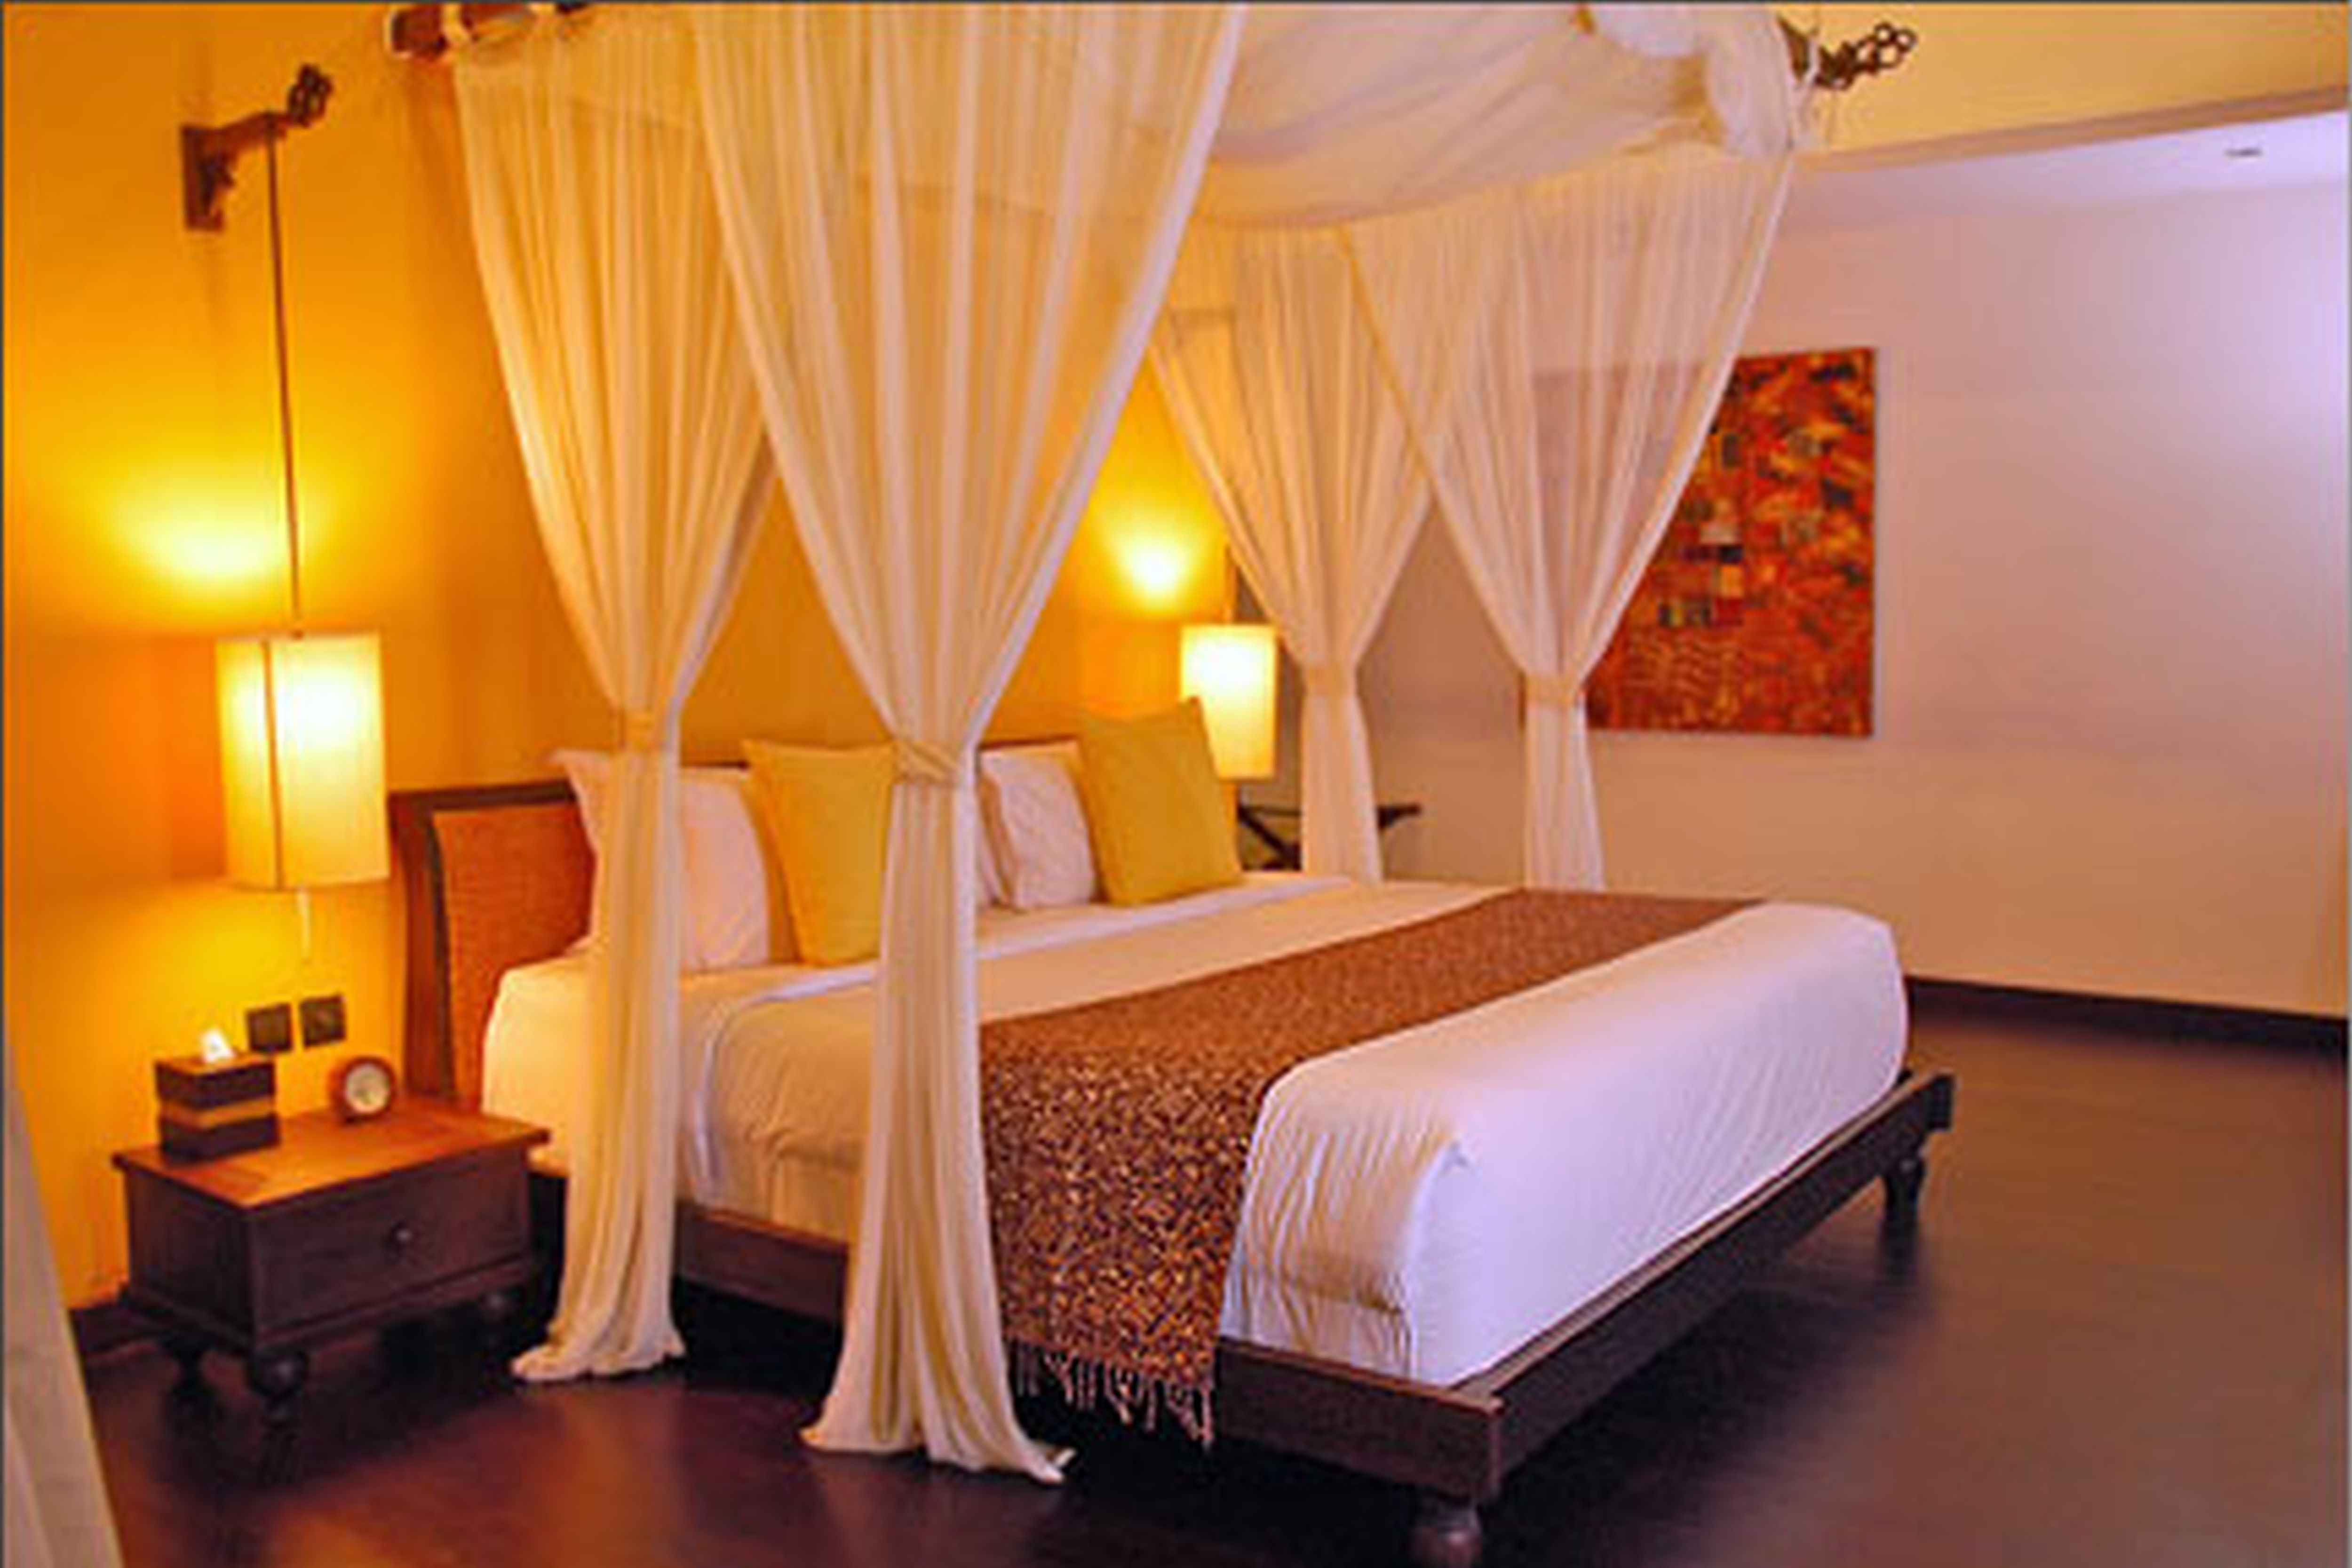 Romantic Bedroom Ideas For Couples | Bedroom designs for ...